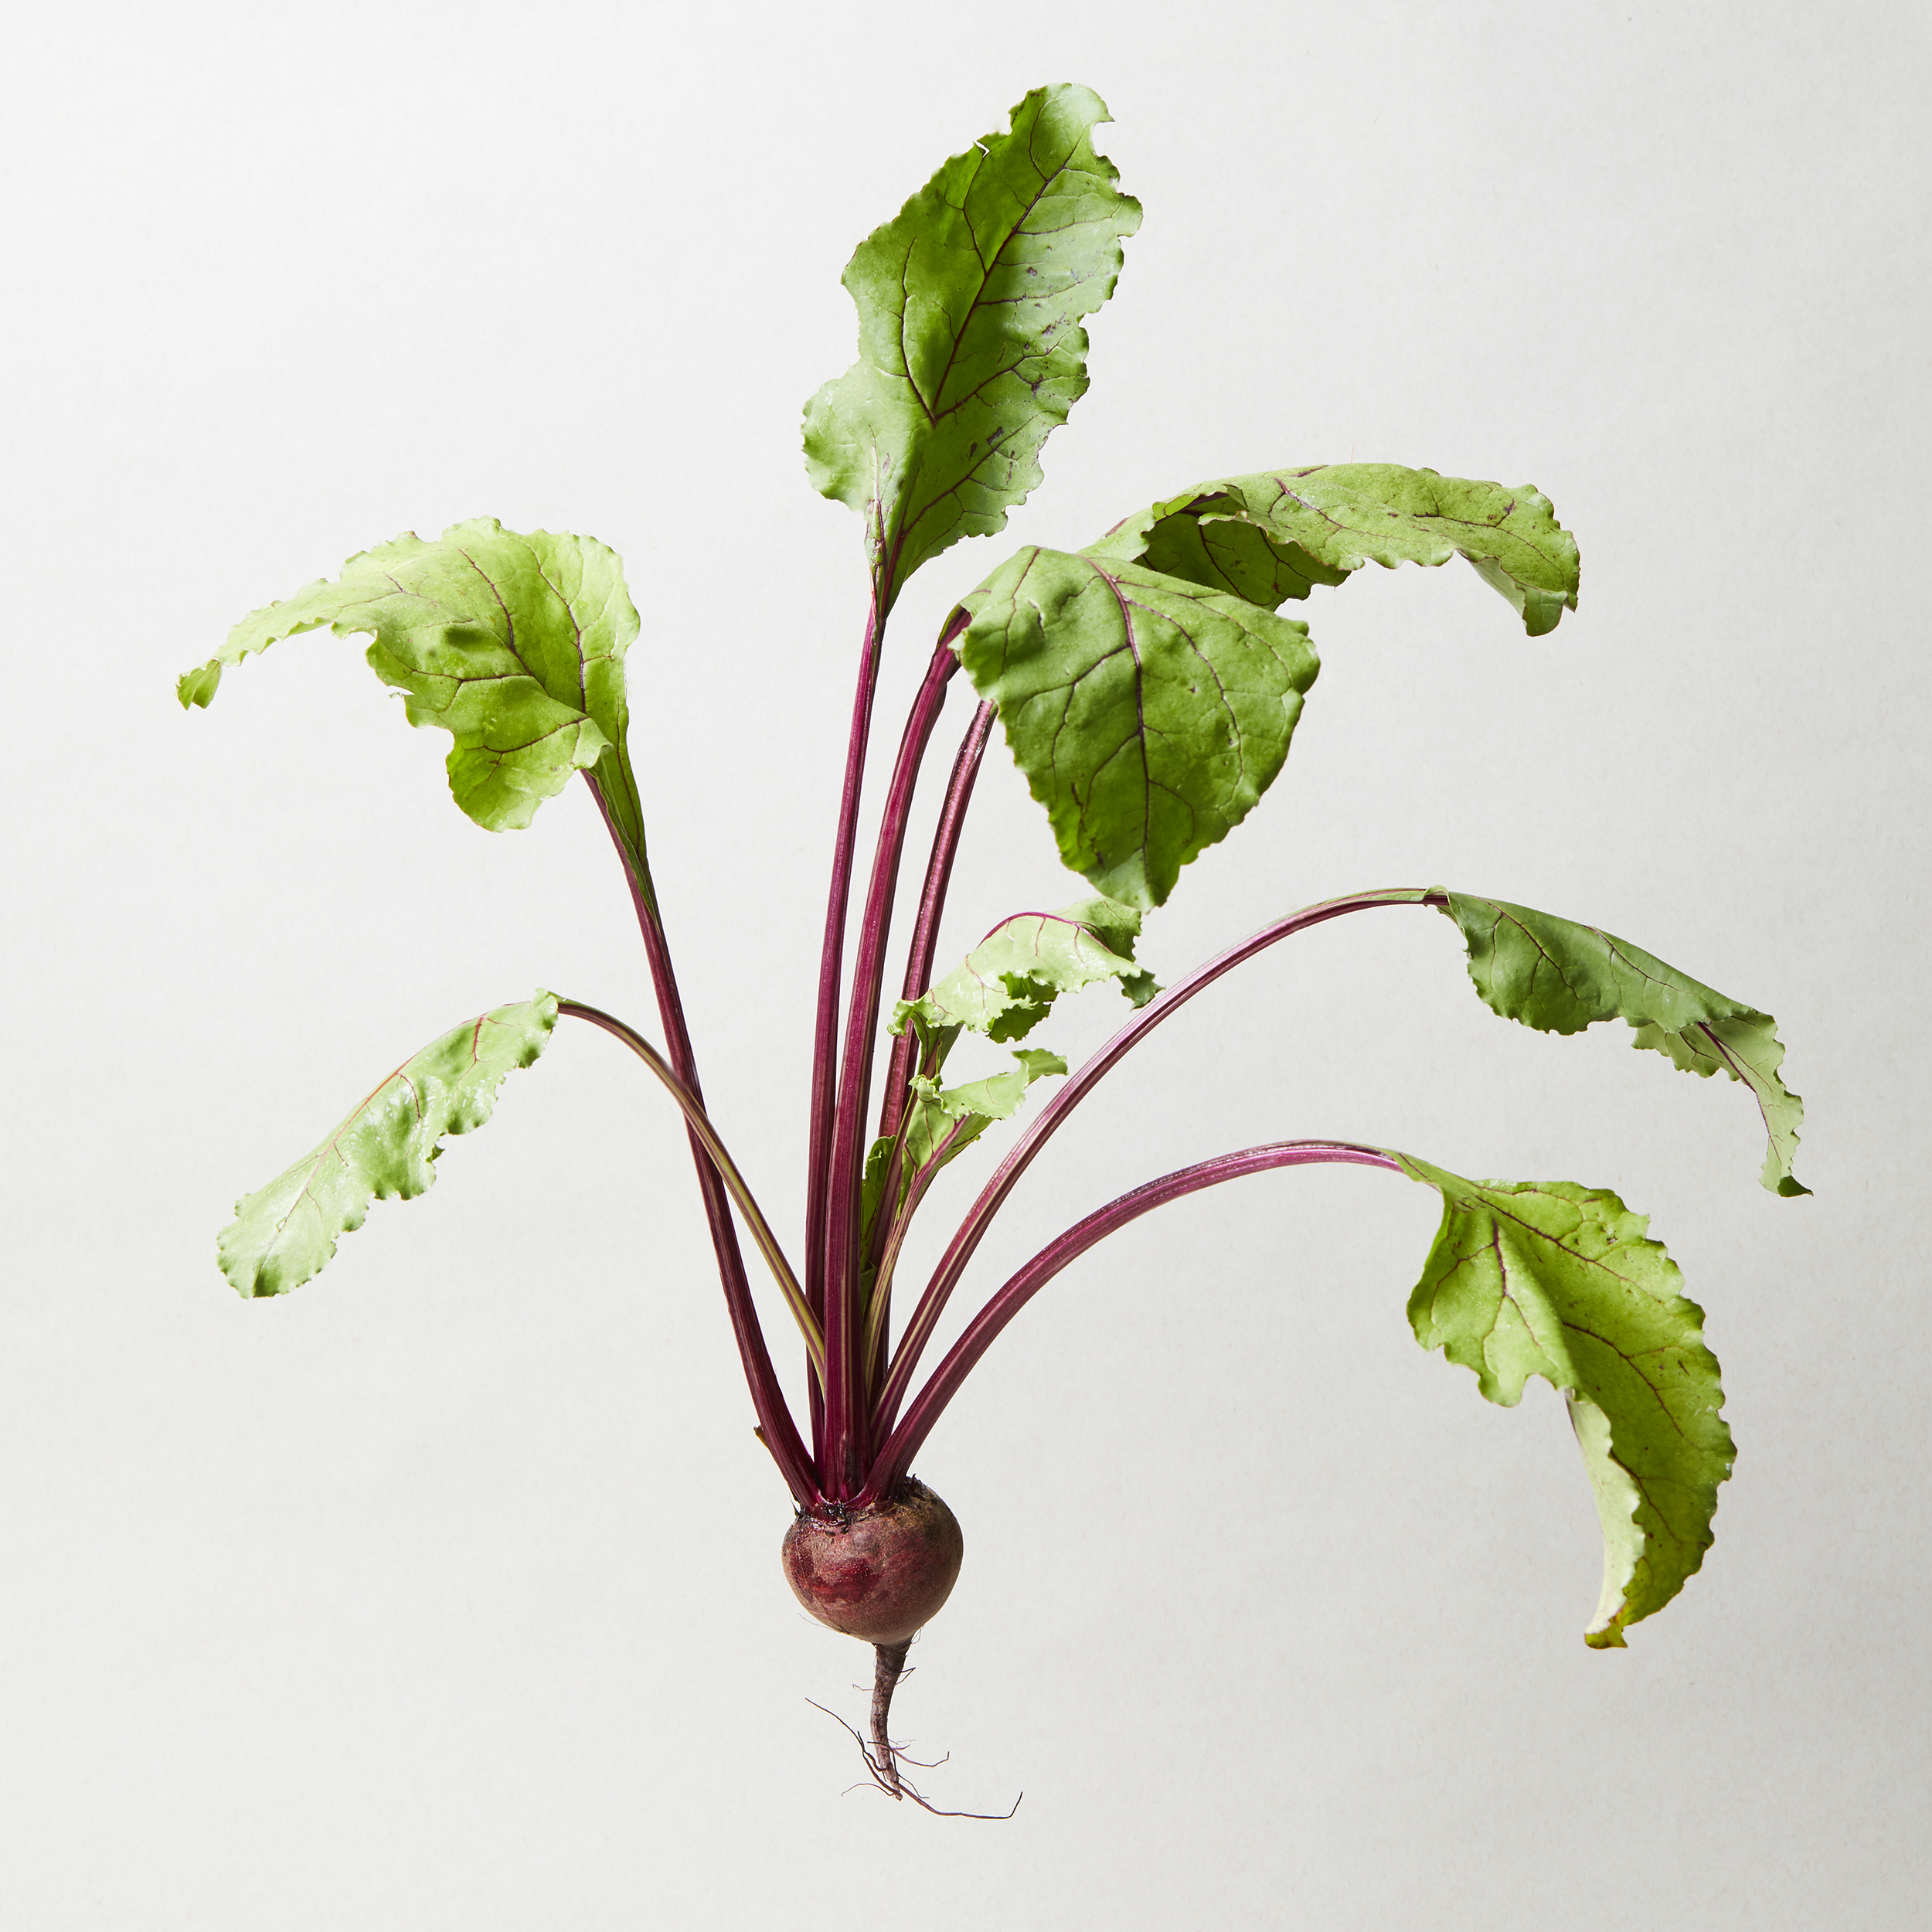 MK_Mixers_Ingredients_Beets_008.jpg